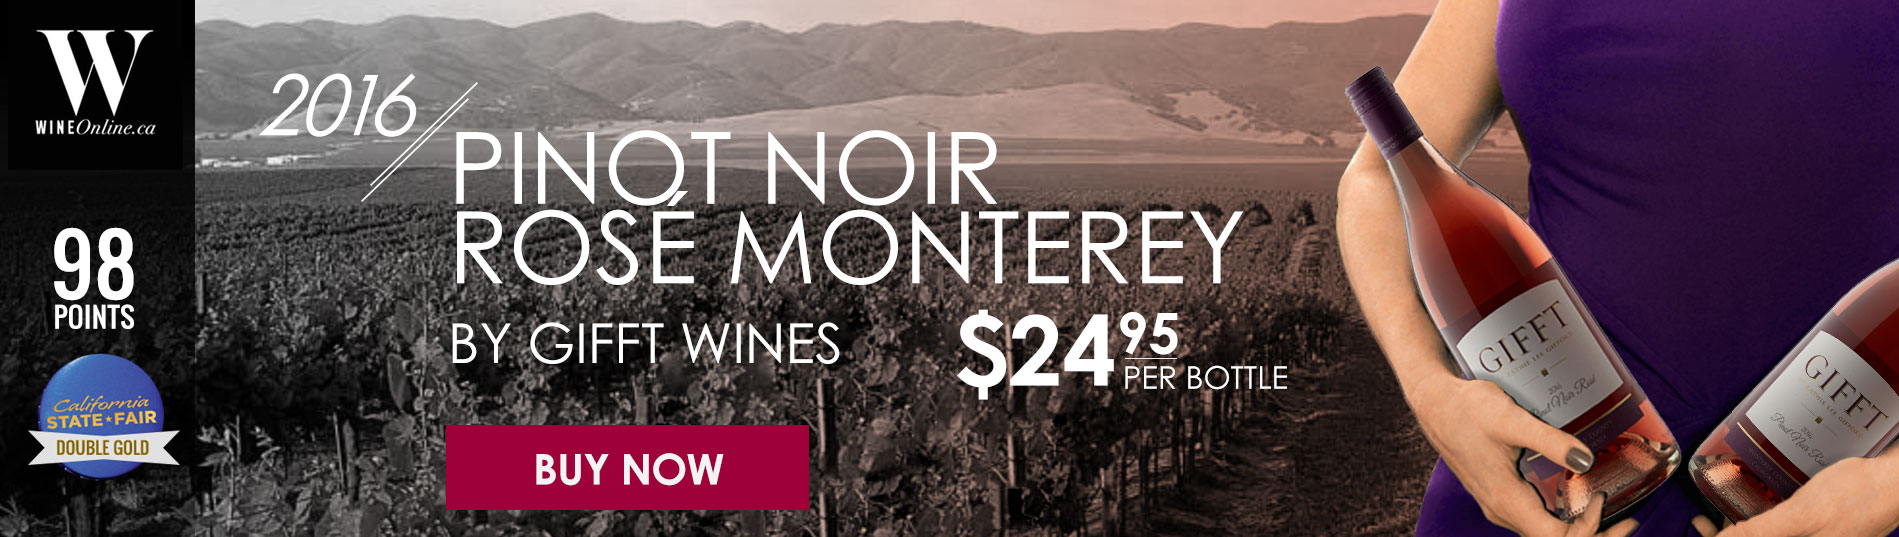 PINOT NOIR ROSÉ MONTEREY BY GIFFT WINES 2016